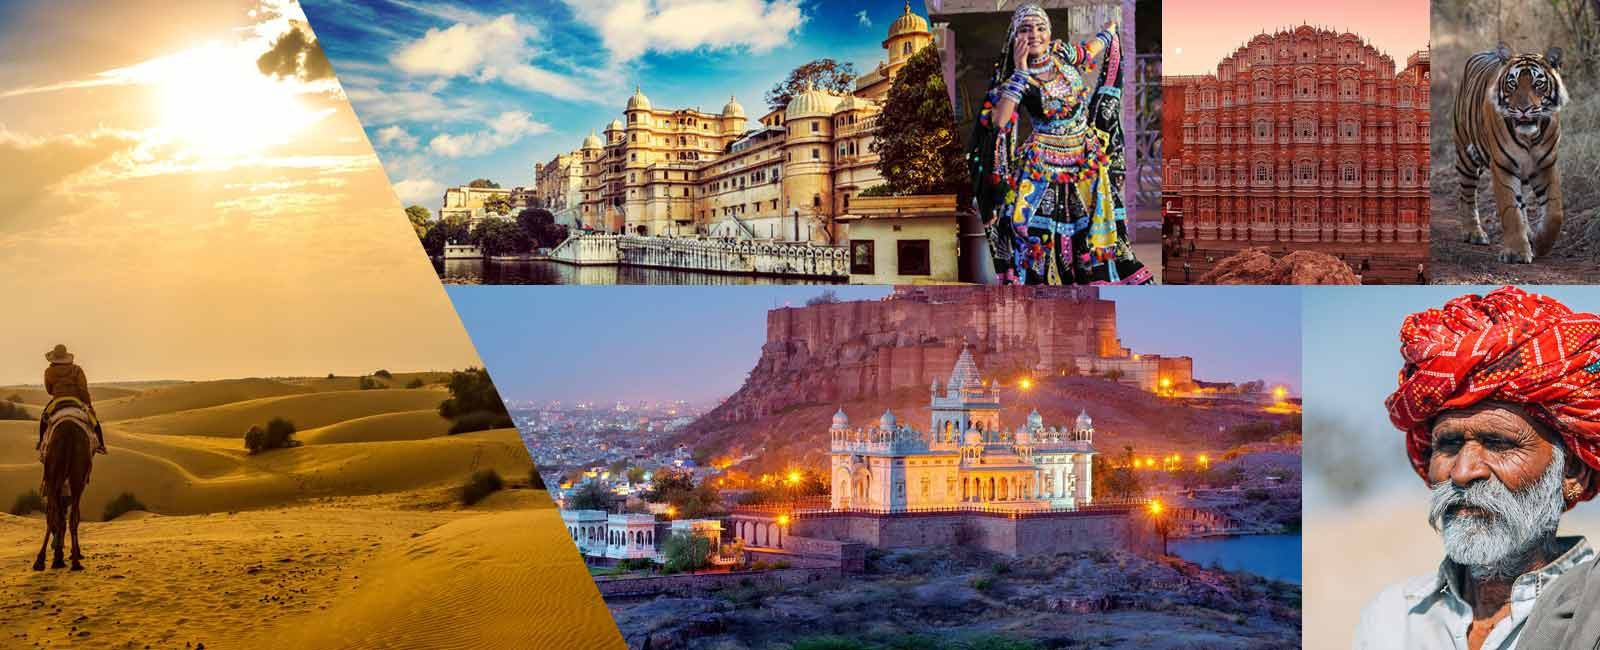 Rajasthan Holidays | Holidays | Travel And Accomodation | Travel Services